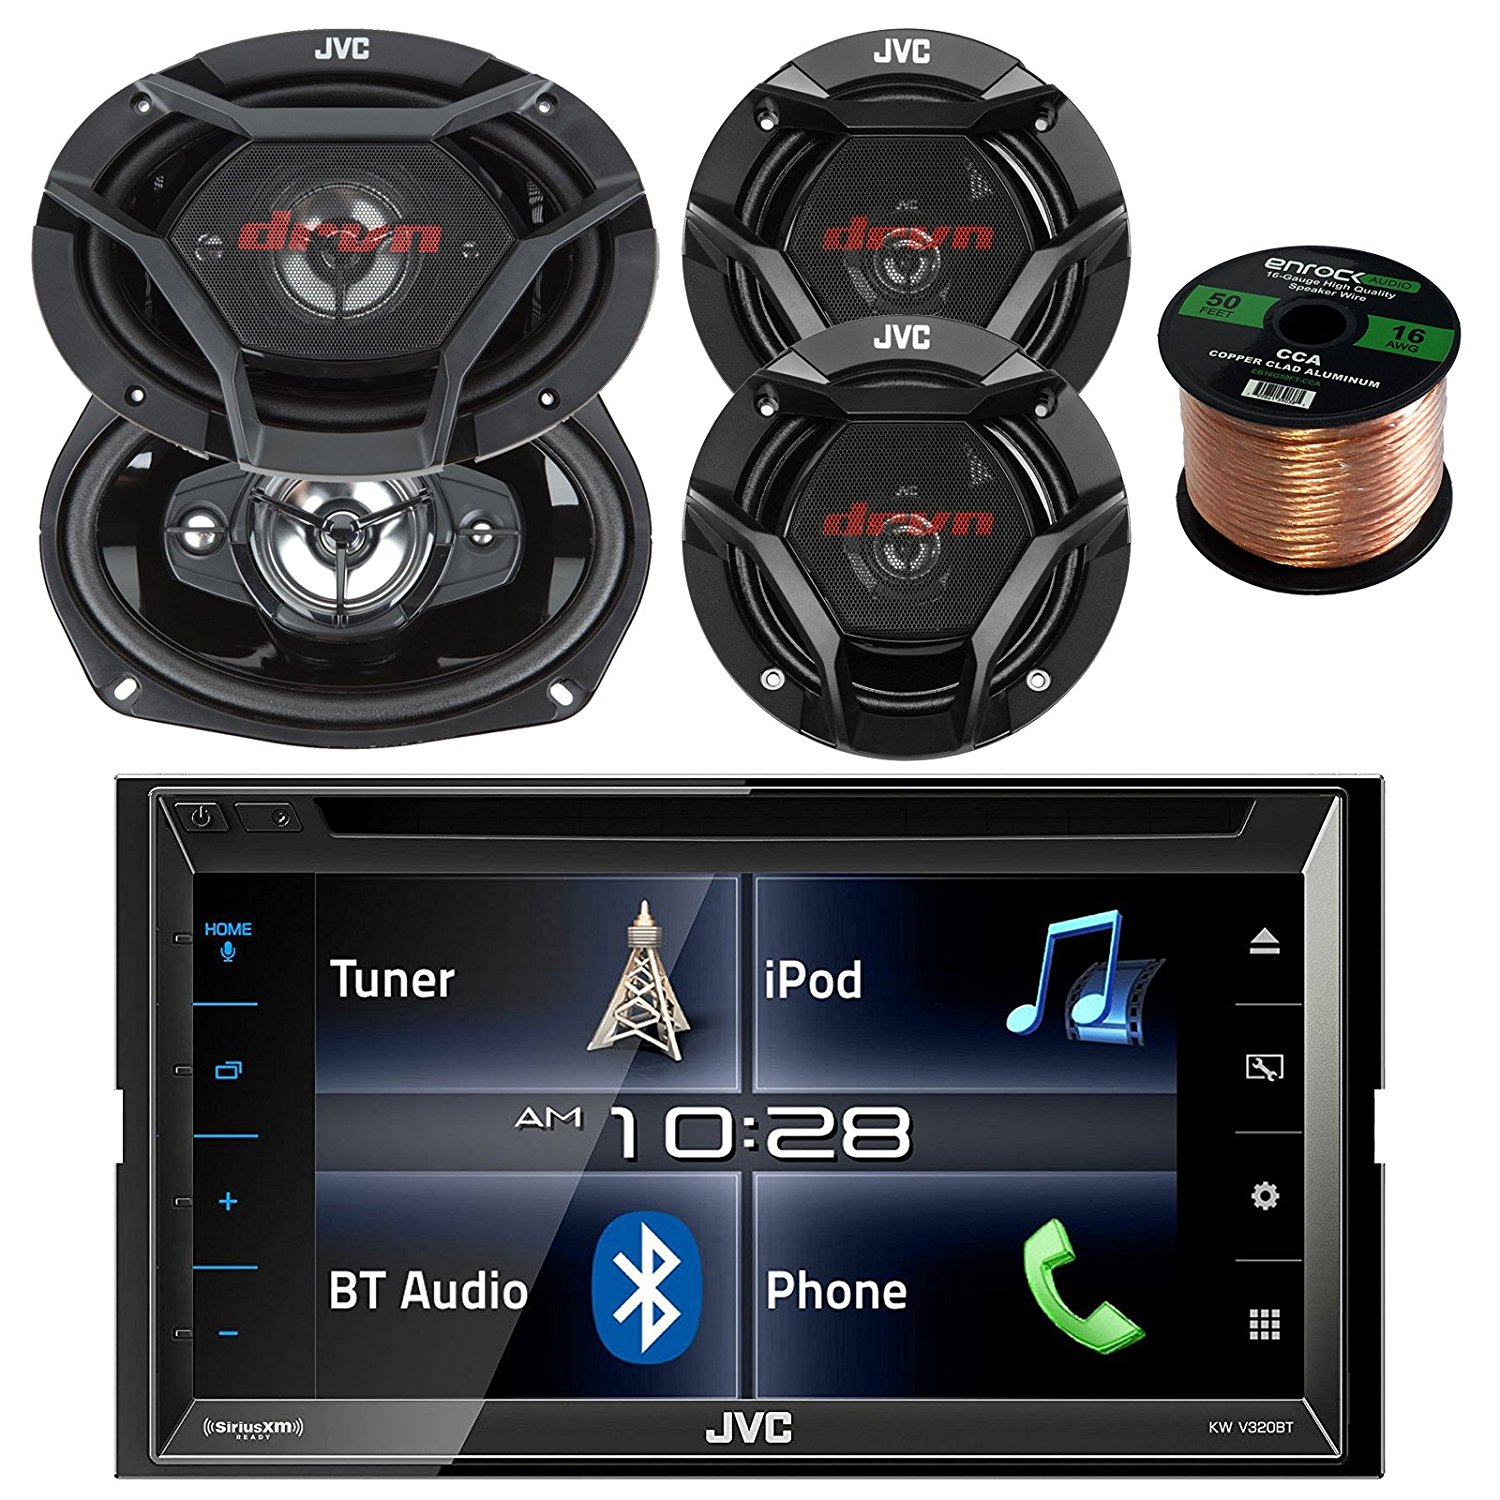 """JVC KWV320BT 6.8"""" Touch Screen Car CD/DVD Bluetooth Stereo Receiver Bundle Combo With 2x 6-3/4"""" 2-Way And 2x 6x9"""" Inch 4-Way Black Audio Coaxial Speakers + Enrock 50 Feet 16-Gauge Speaker Wire"""